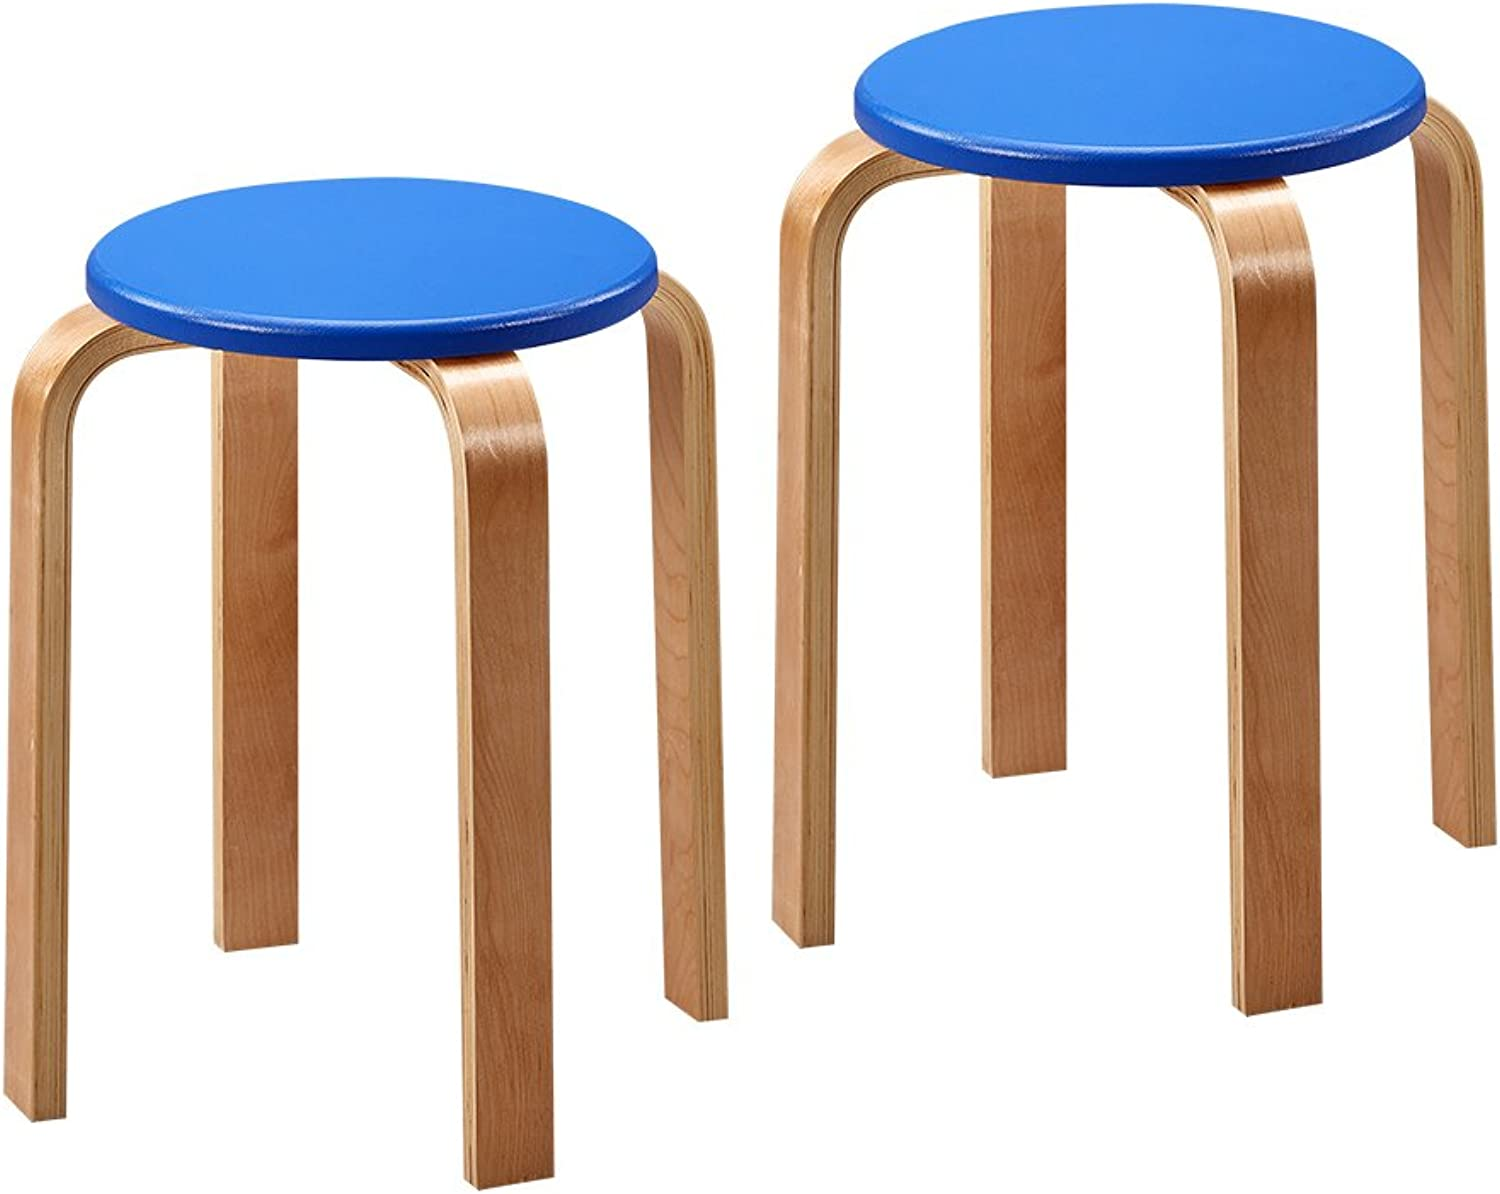 European Chair Plastic Stool, Thick Solid Wood Small Stool Simple Dining Table high Stool Step Stool Footstool (2 Pieces) (color   bluee)